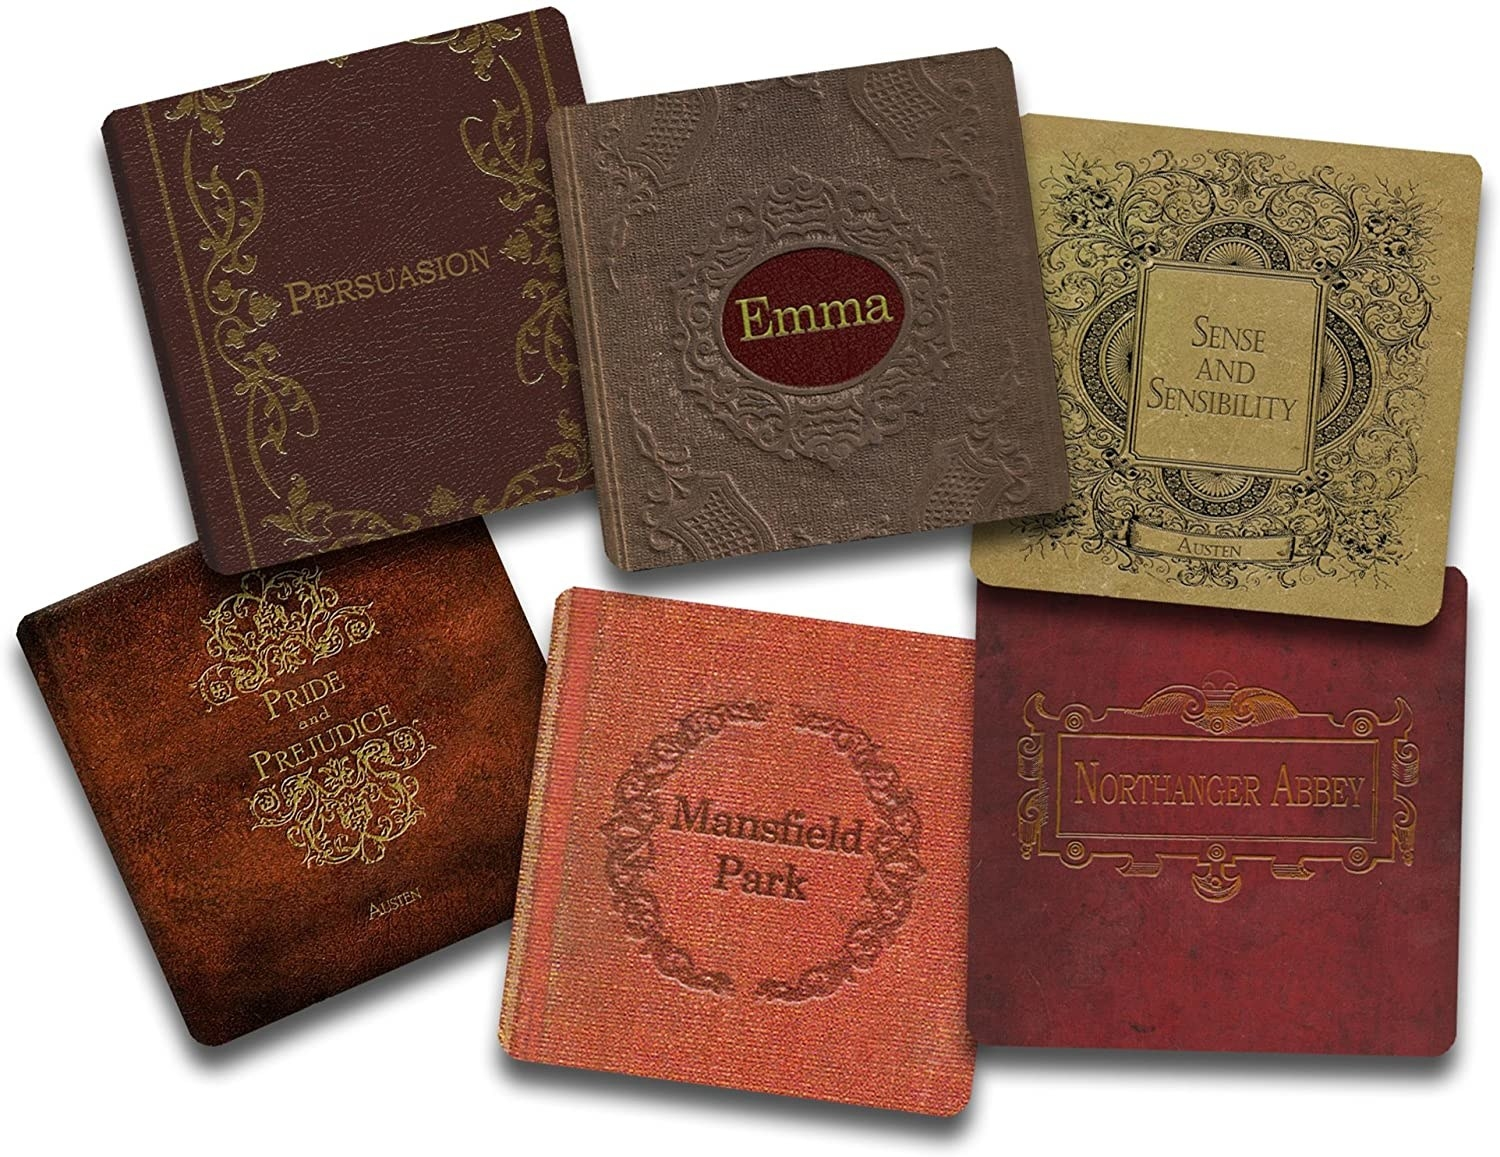 The six coasters in different covers to look like leather-bound books